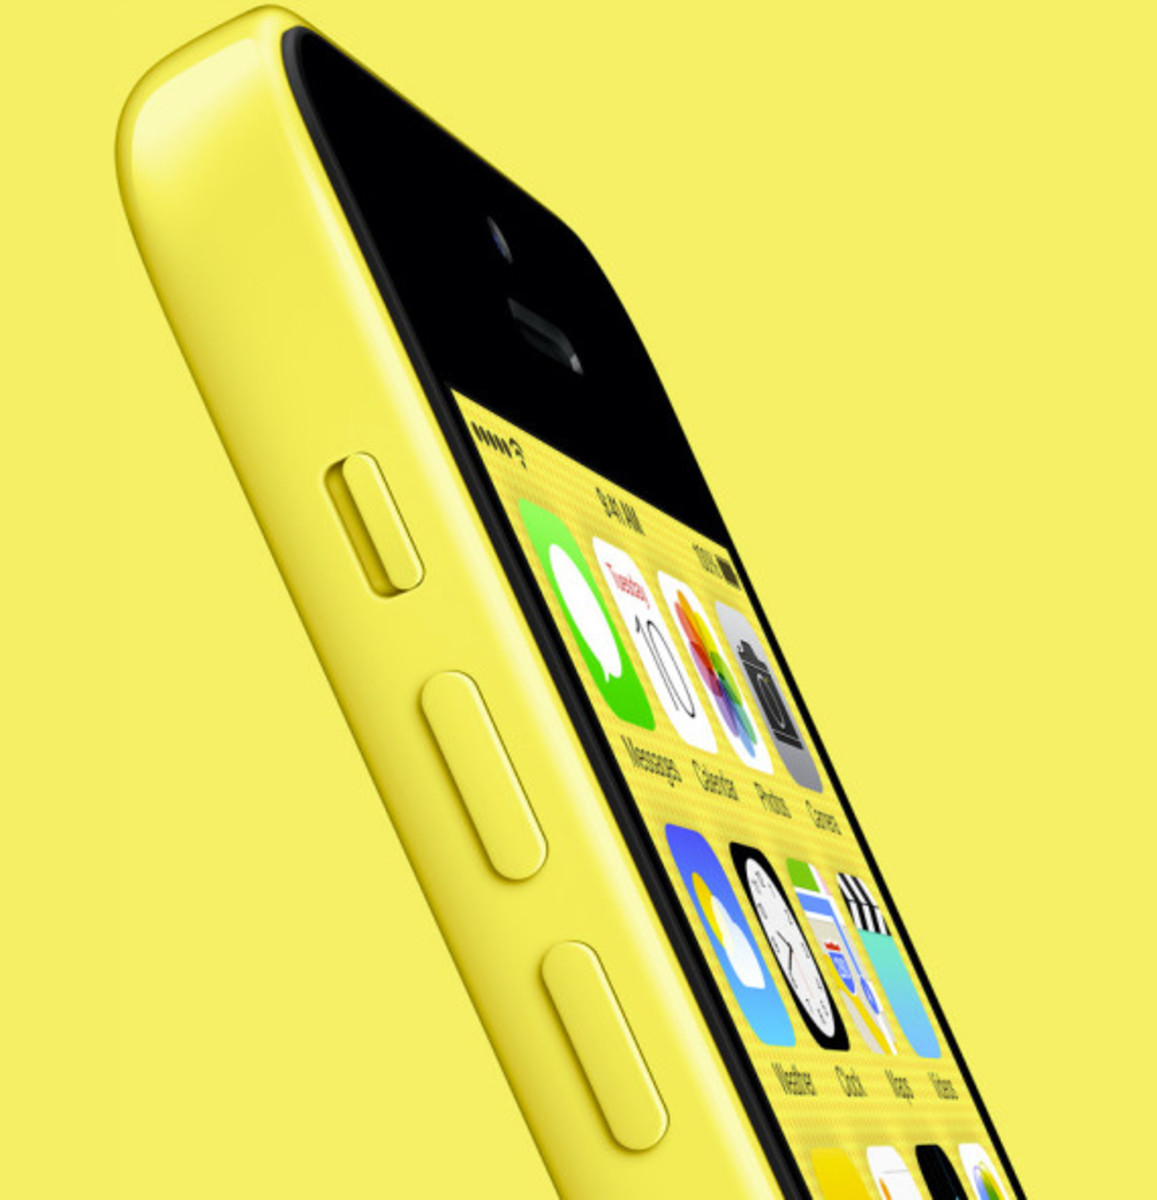 Apple iPhone 5C - Officially Unveiled - 13